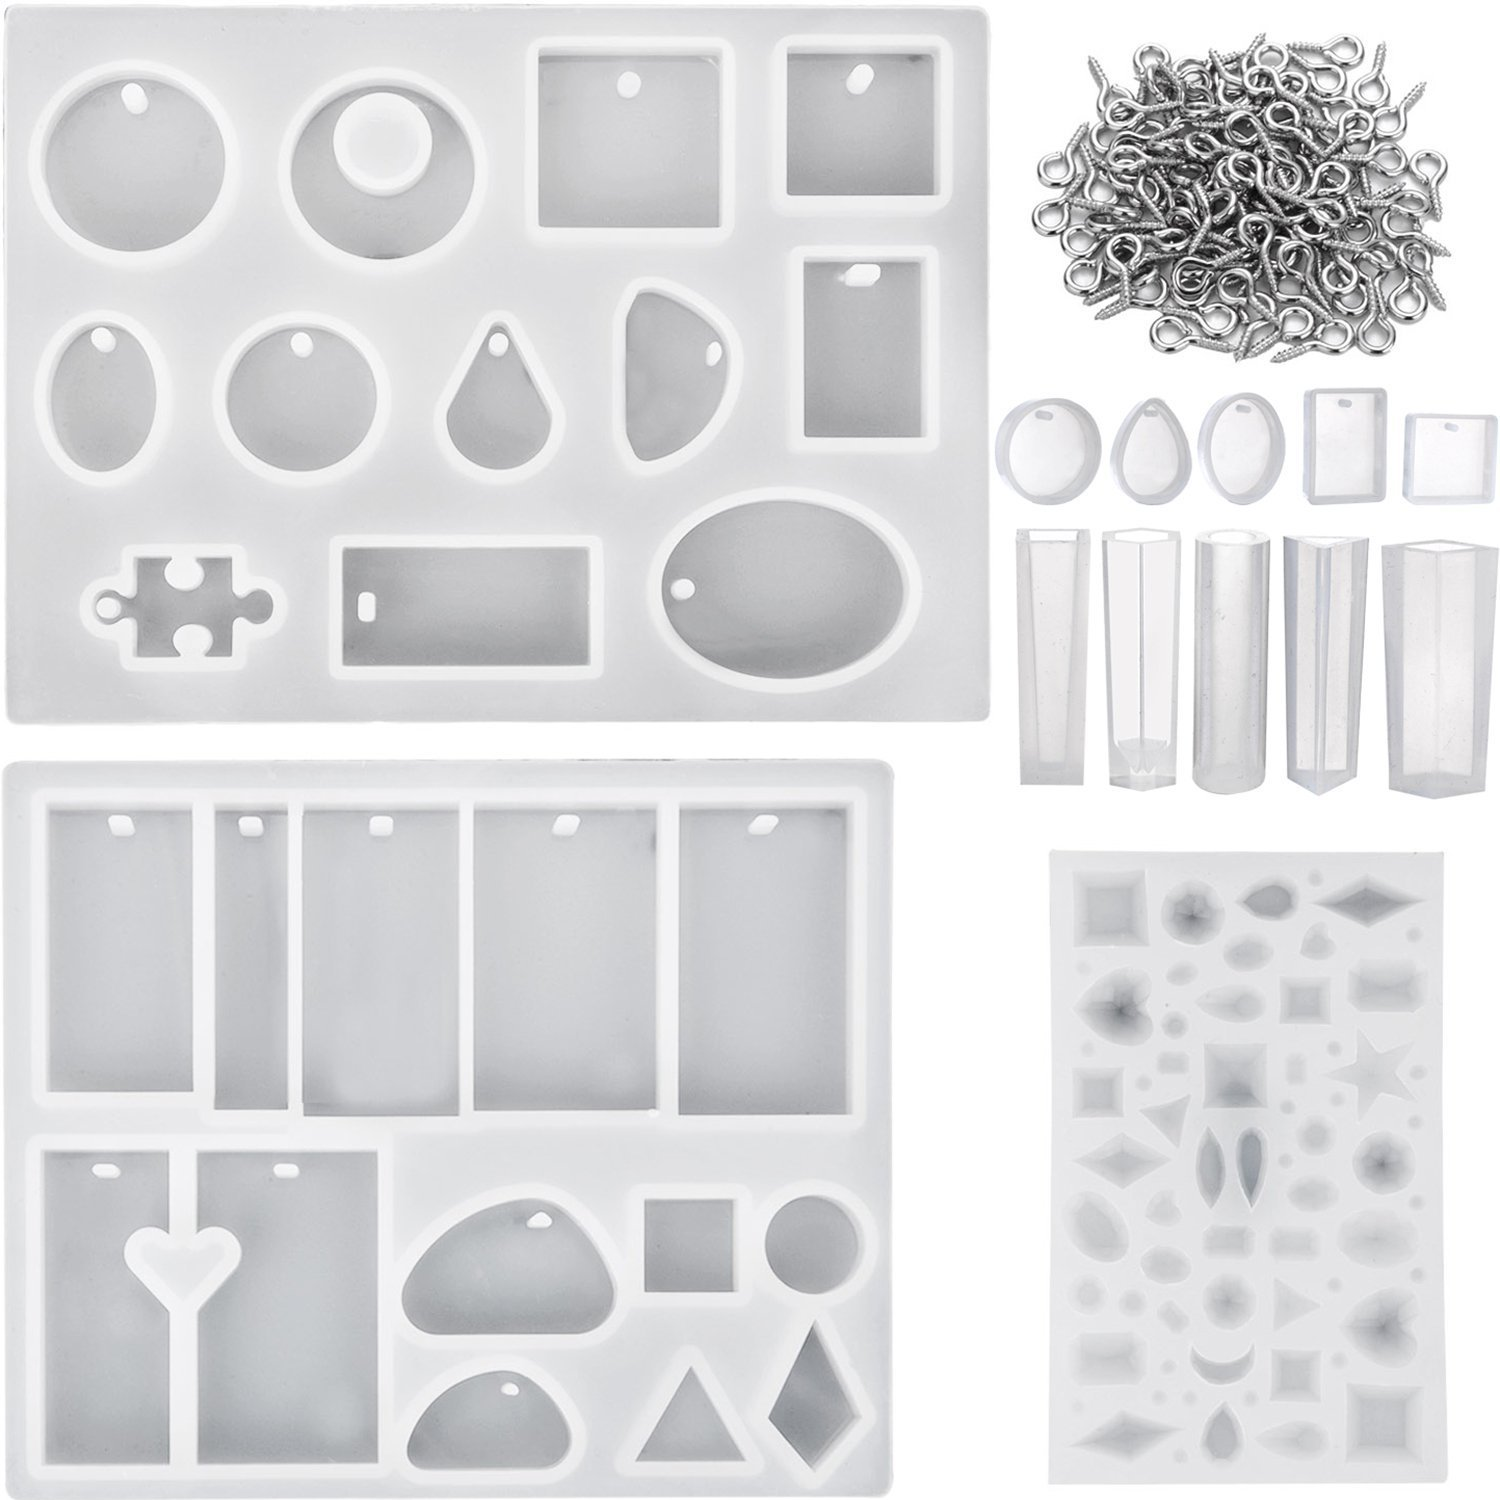 13 Pieces Assorted Designs Resin Casting Molds Silicone Jewelry Making Molds Set with 100 Pieces Mini Screw Eye Pins for Jewelry Pendants DIY KisSealed Jewelry-13